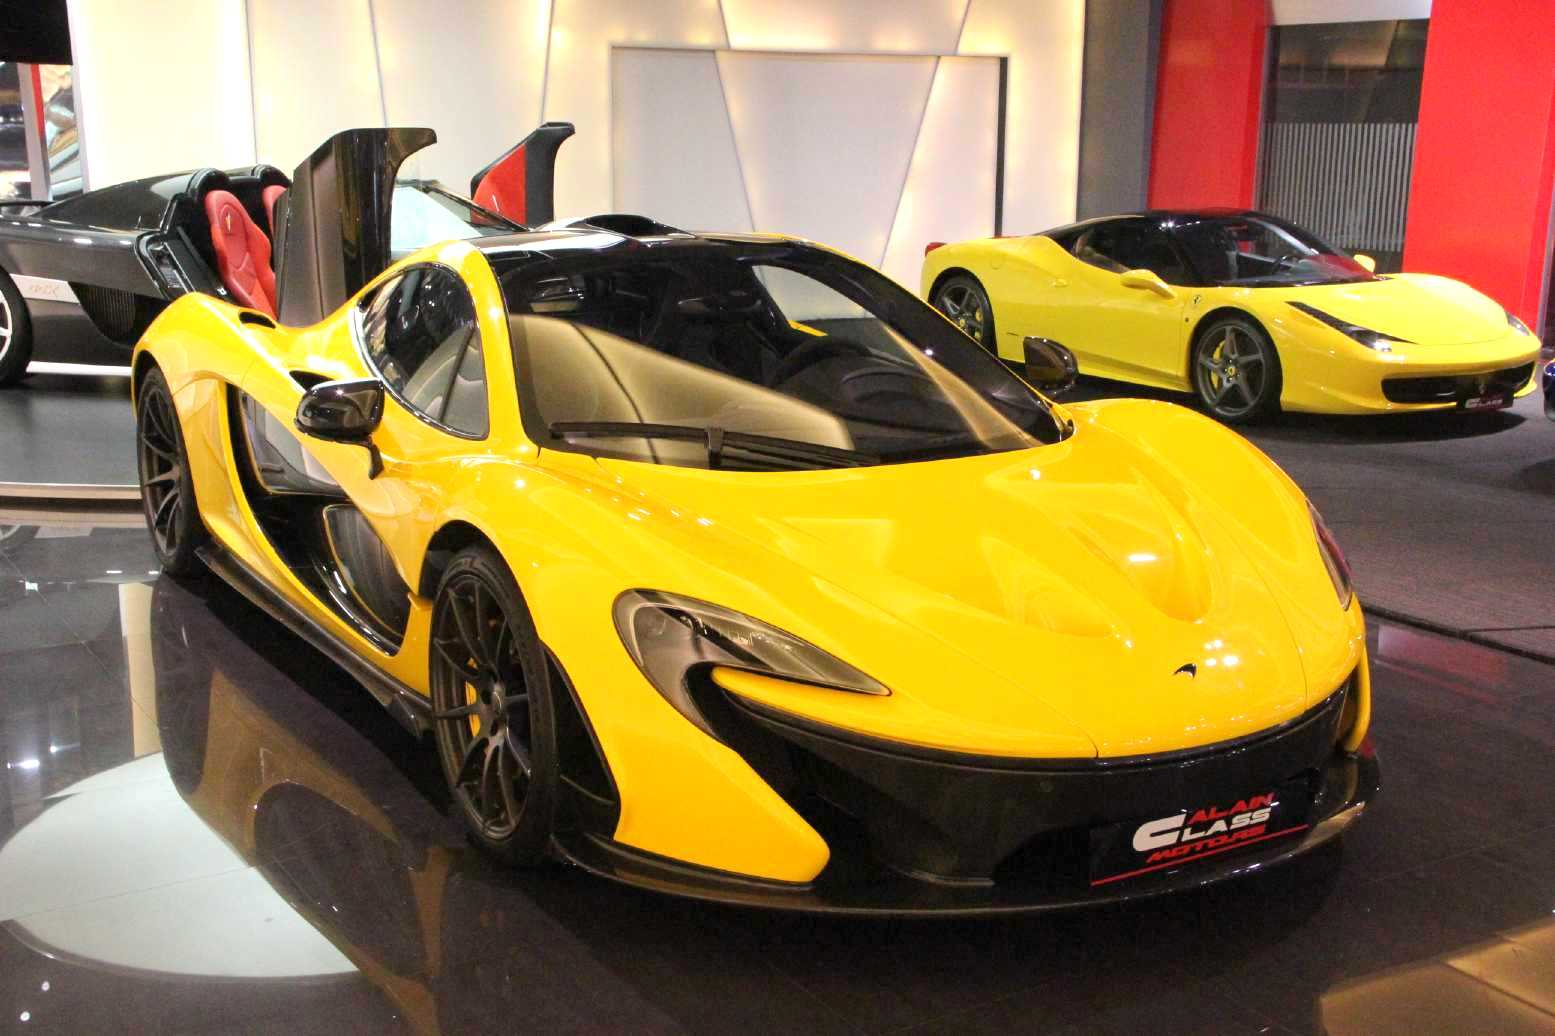 mclaren p1 062 for sale despite official sold out status autoevolution. Black Bedroom Furniture Sets. Home Design Ideas